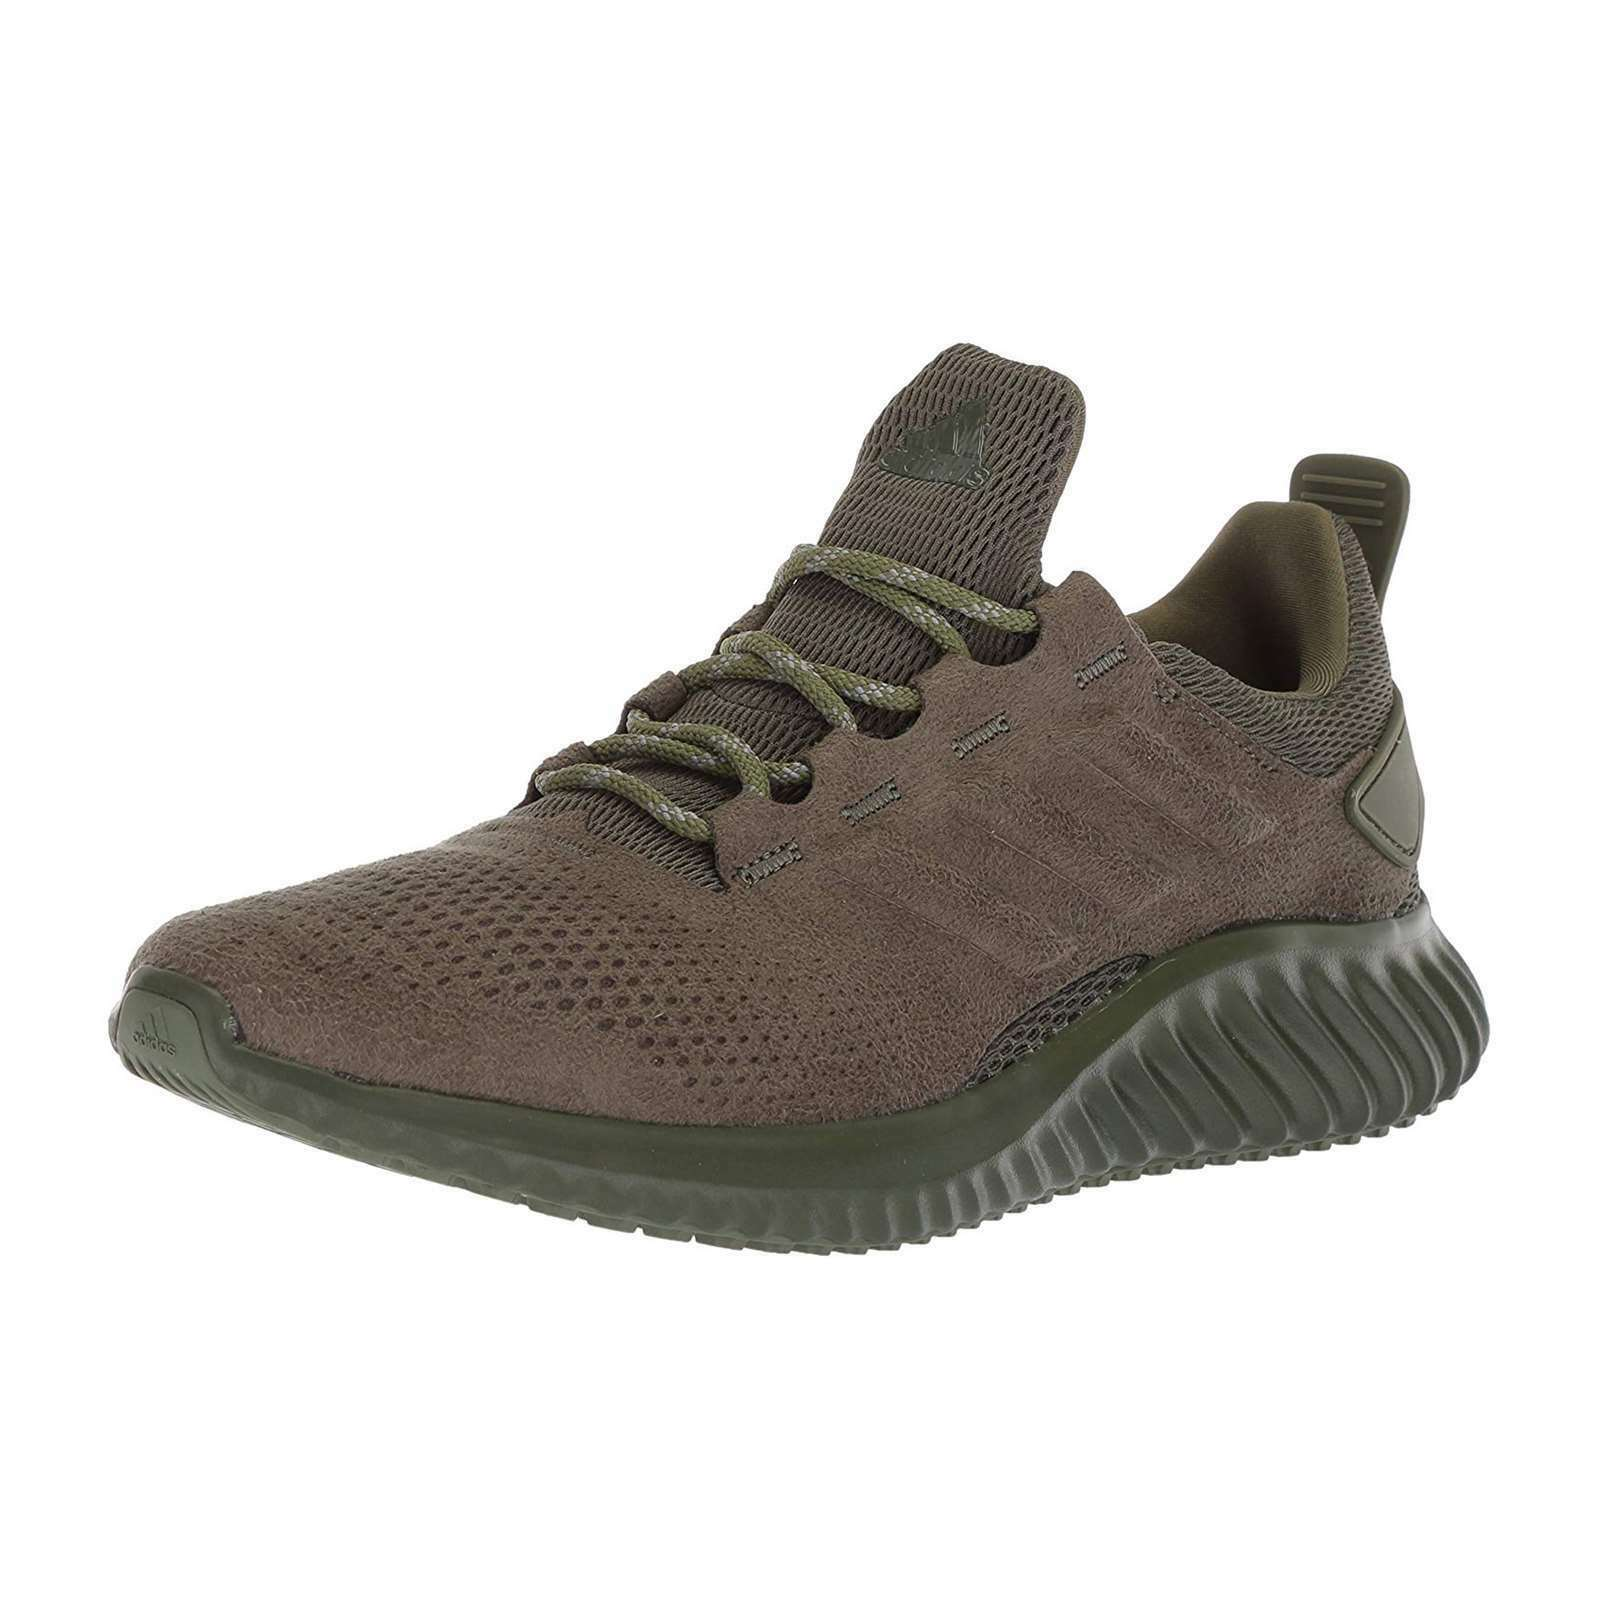 da5713c11d6c adidas Alphabounce CR M Cg4572 Olive Green DS Size 8.5 for sale ...